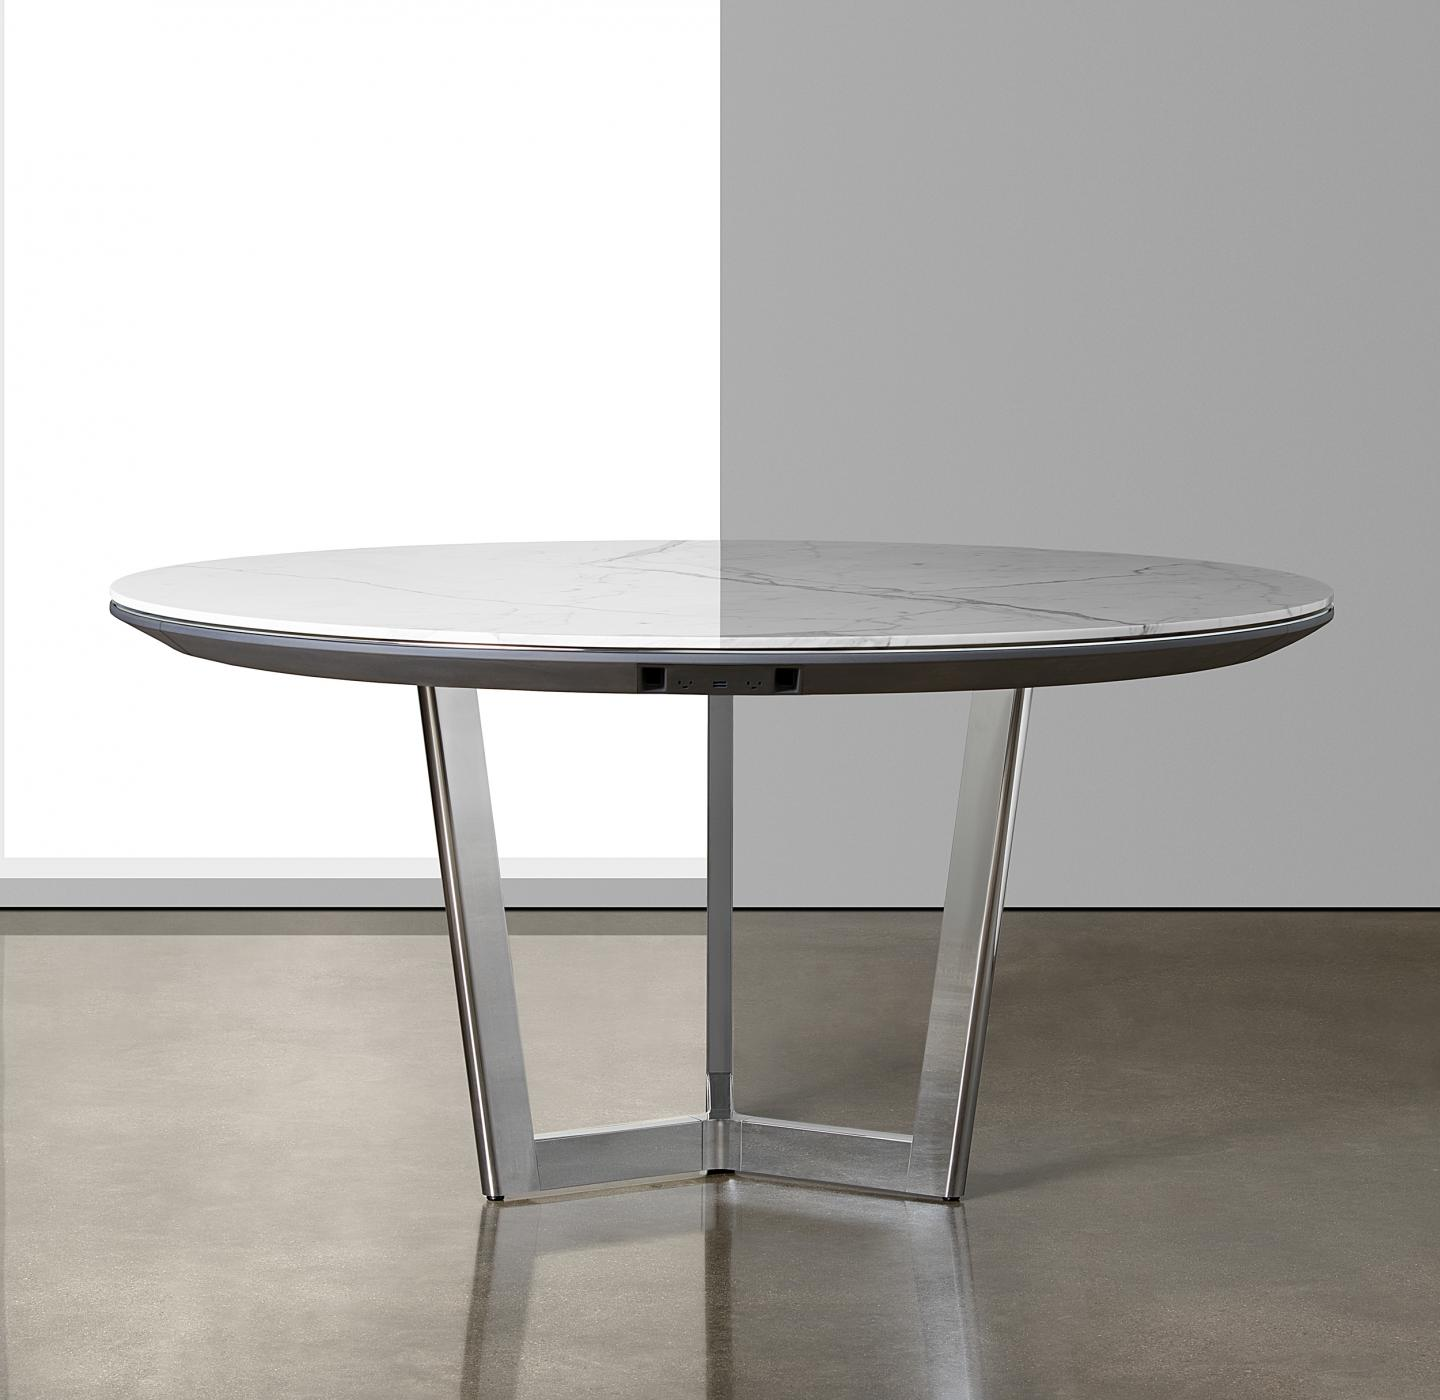 Halo tables are available in any shape and size to perfectly fit your space.